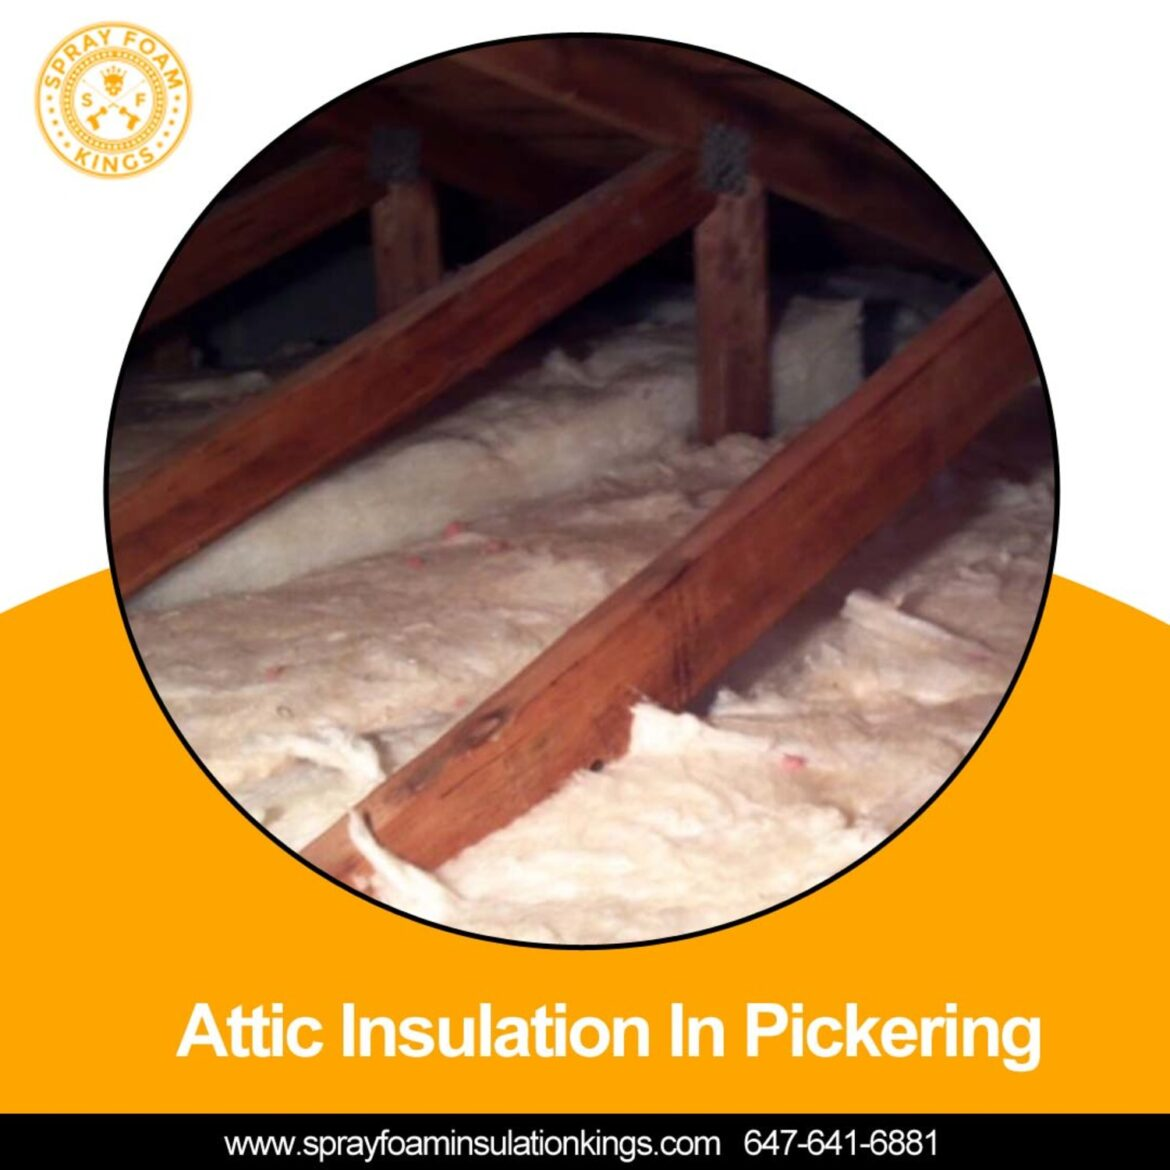 Spray Foam Insulation Is a Better Option Than Other Types of Insulation